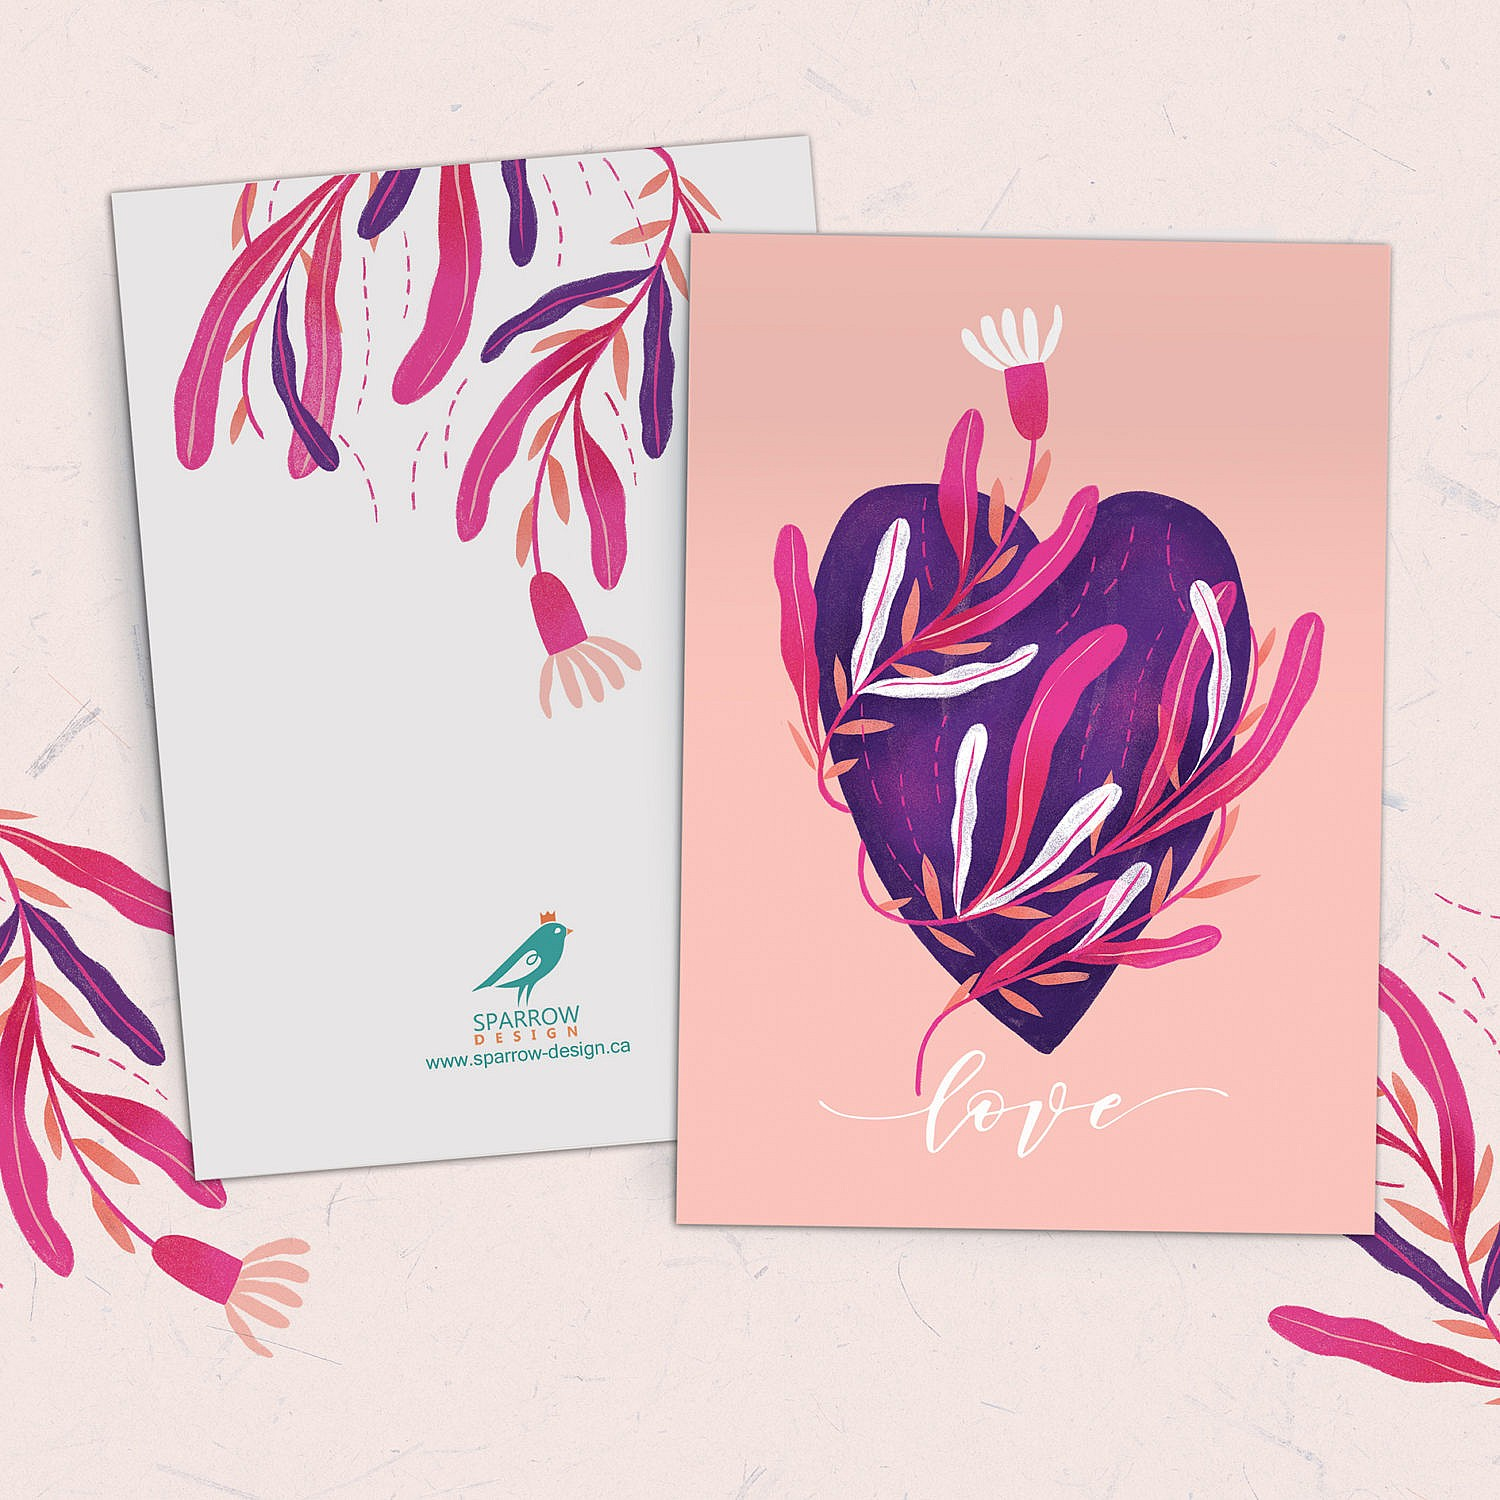 Valentine's card showing a pink heart with light pink and white flowers around it